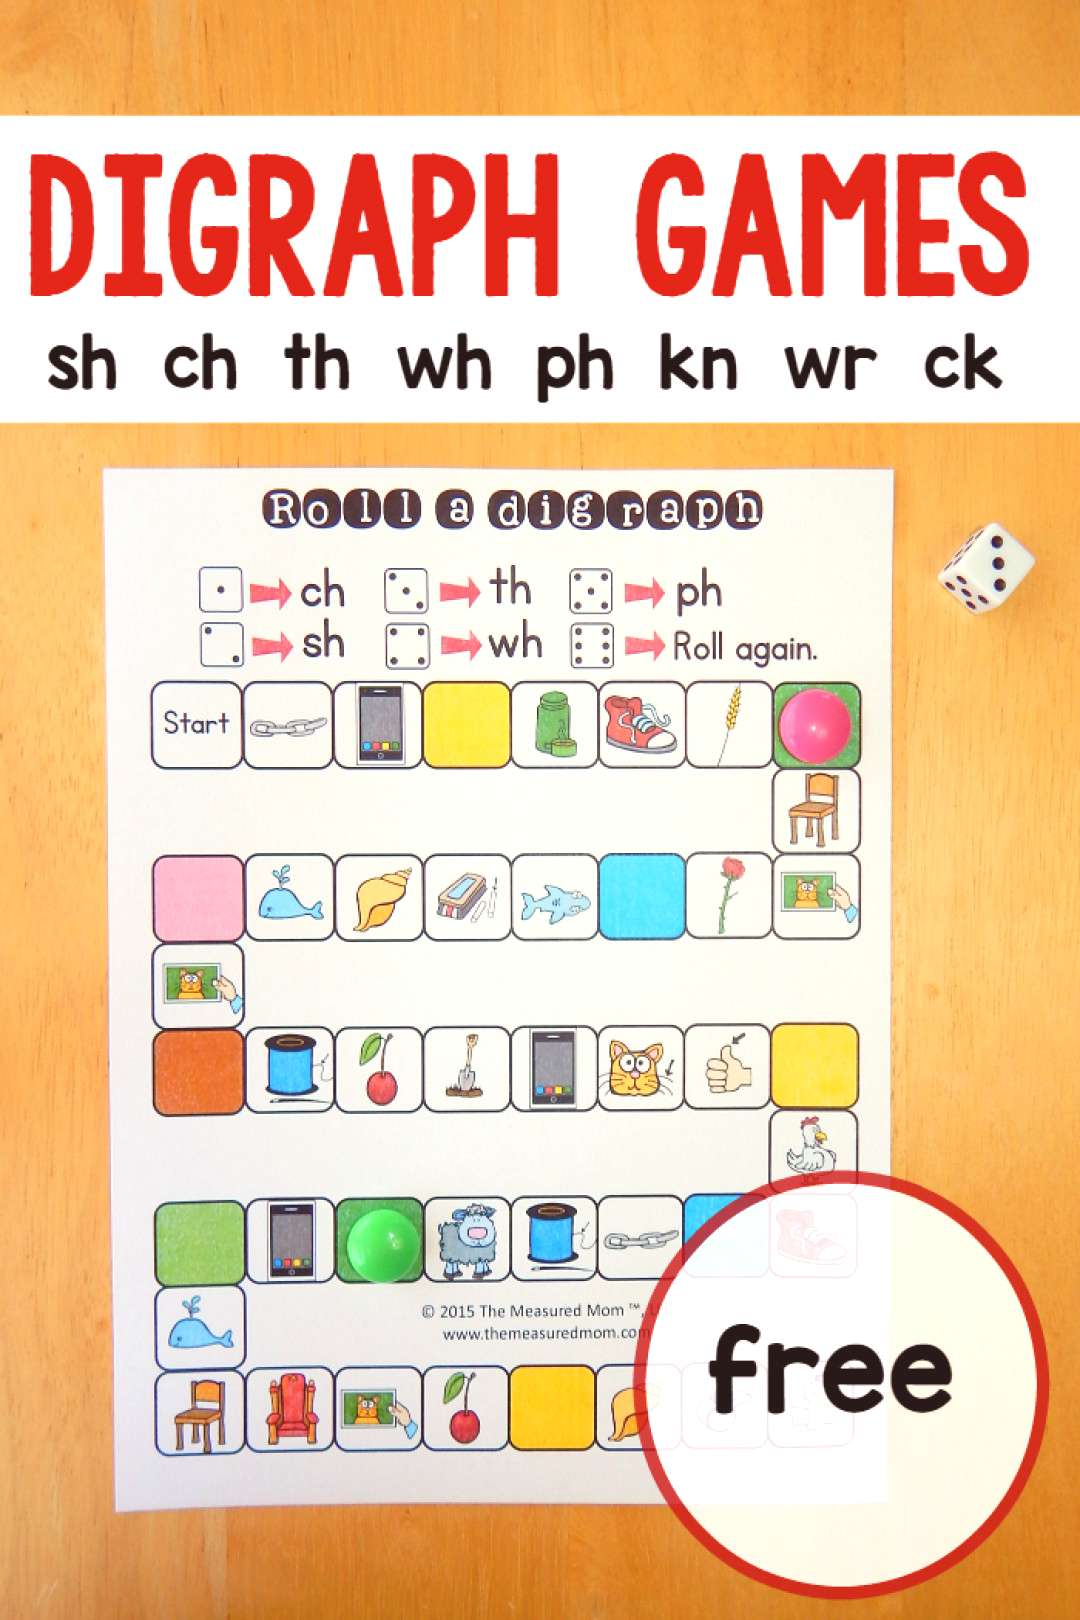 5 free games for teaching digraphs If youre doing digraph activities with your learners, try these